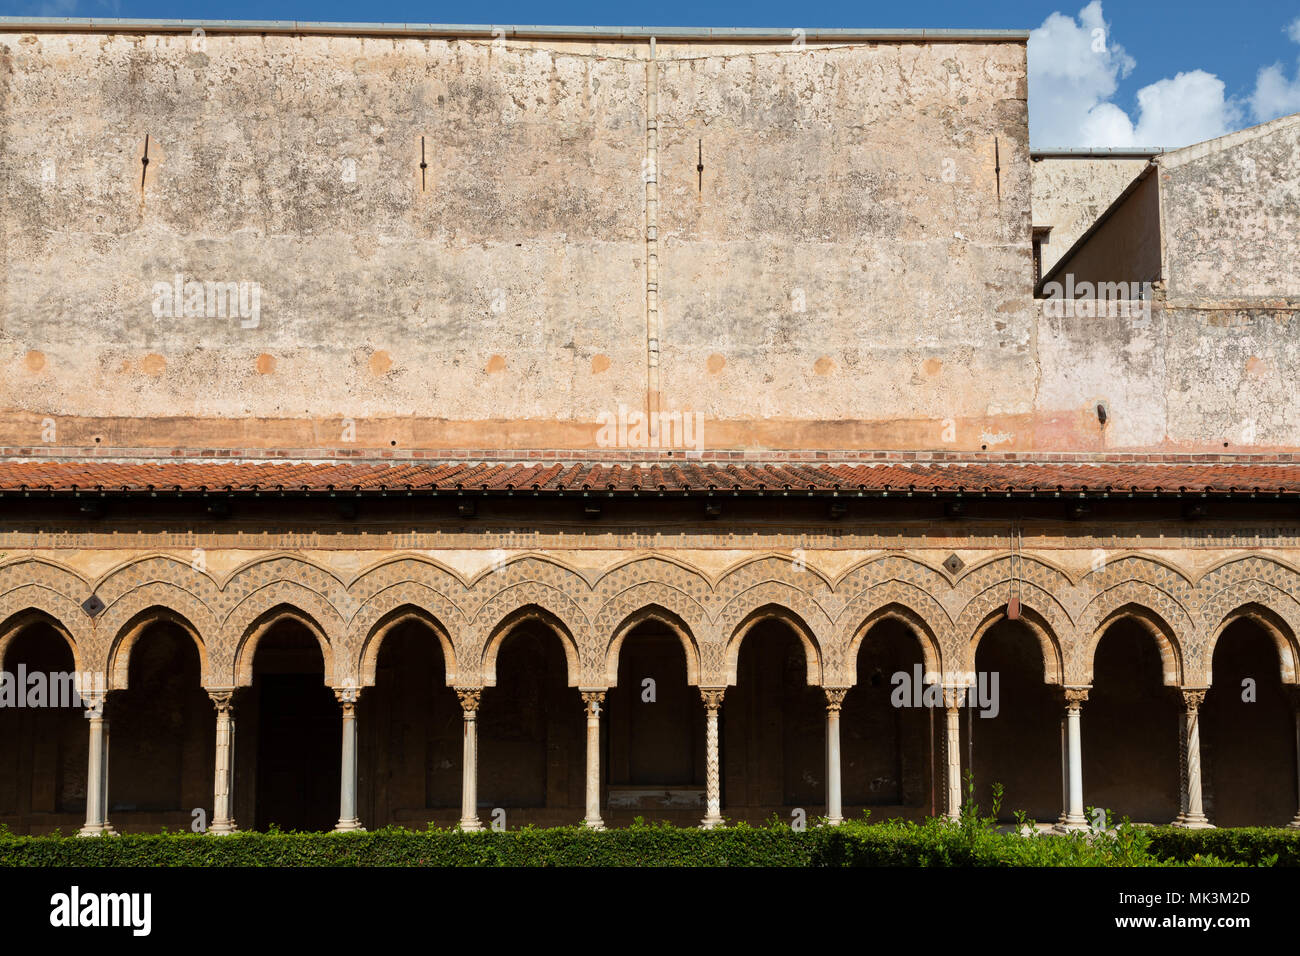 Cloisters of Monreale, Sicily,  Italy - Stock Image